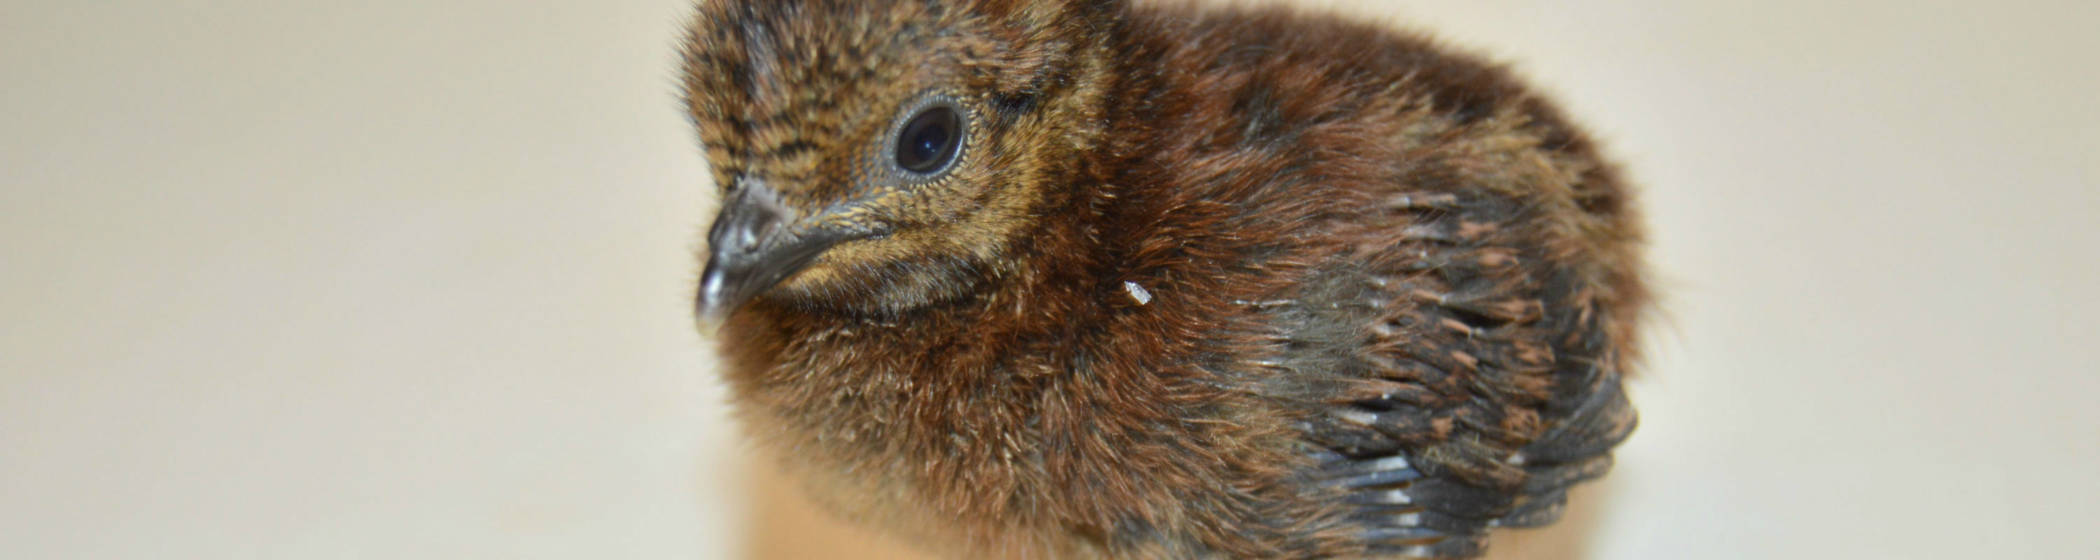 Rothschild peacock-pheasant chick at Waddesdon Manor